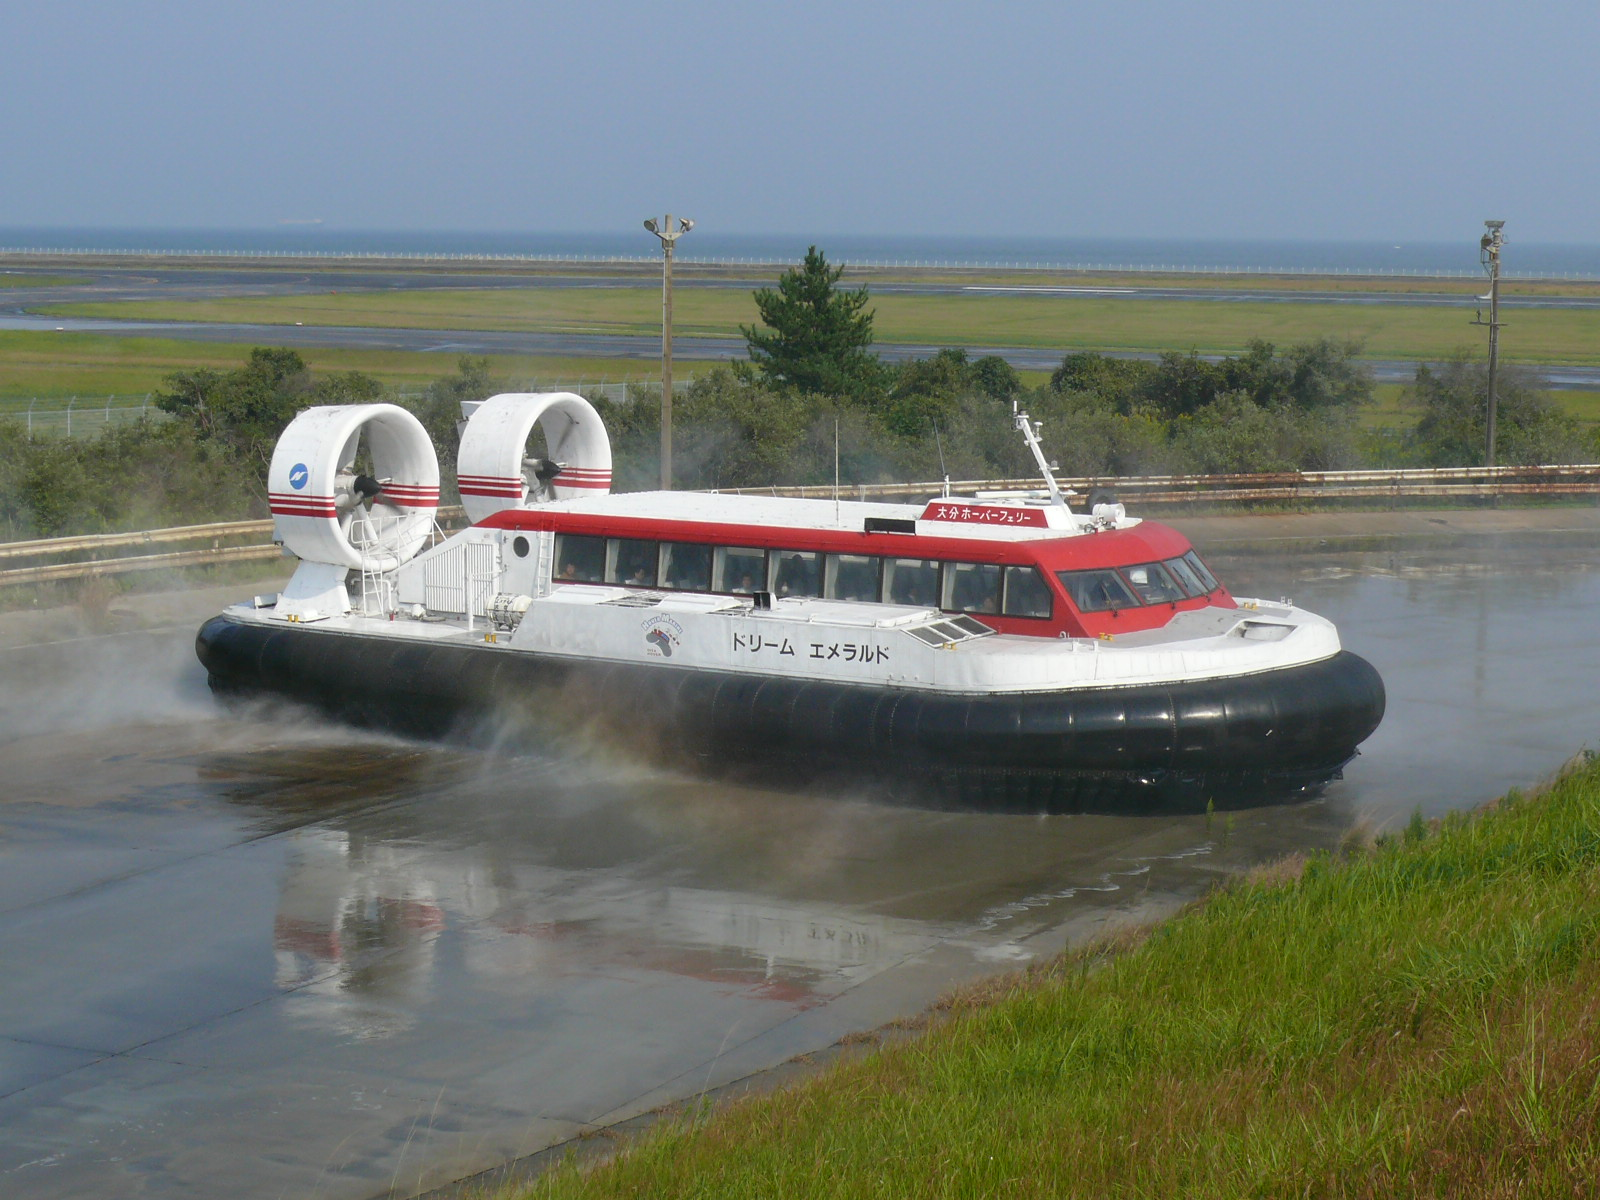 https://upload.wikimedia.org/wikipedia/commons/4/4f/Oita_Hover_Ferry_Dream_emerald.JPG